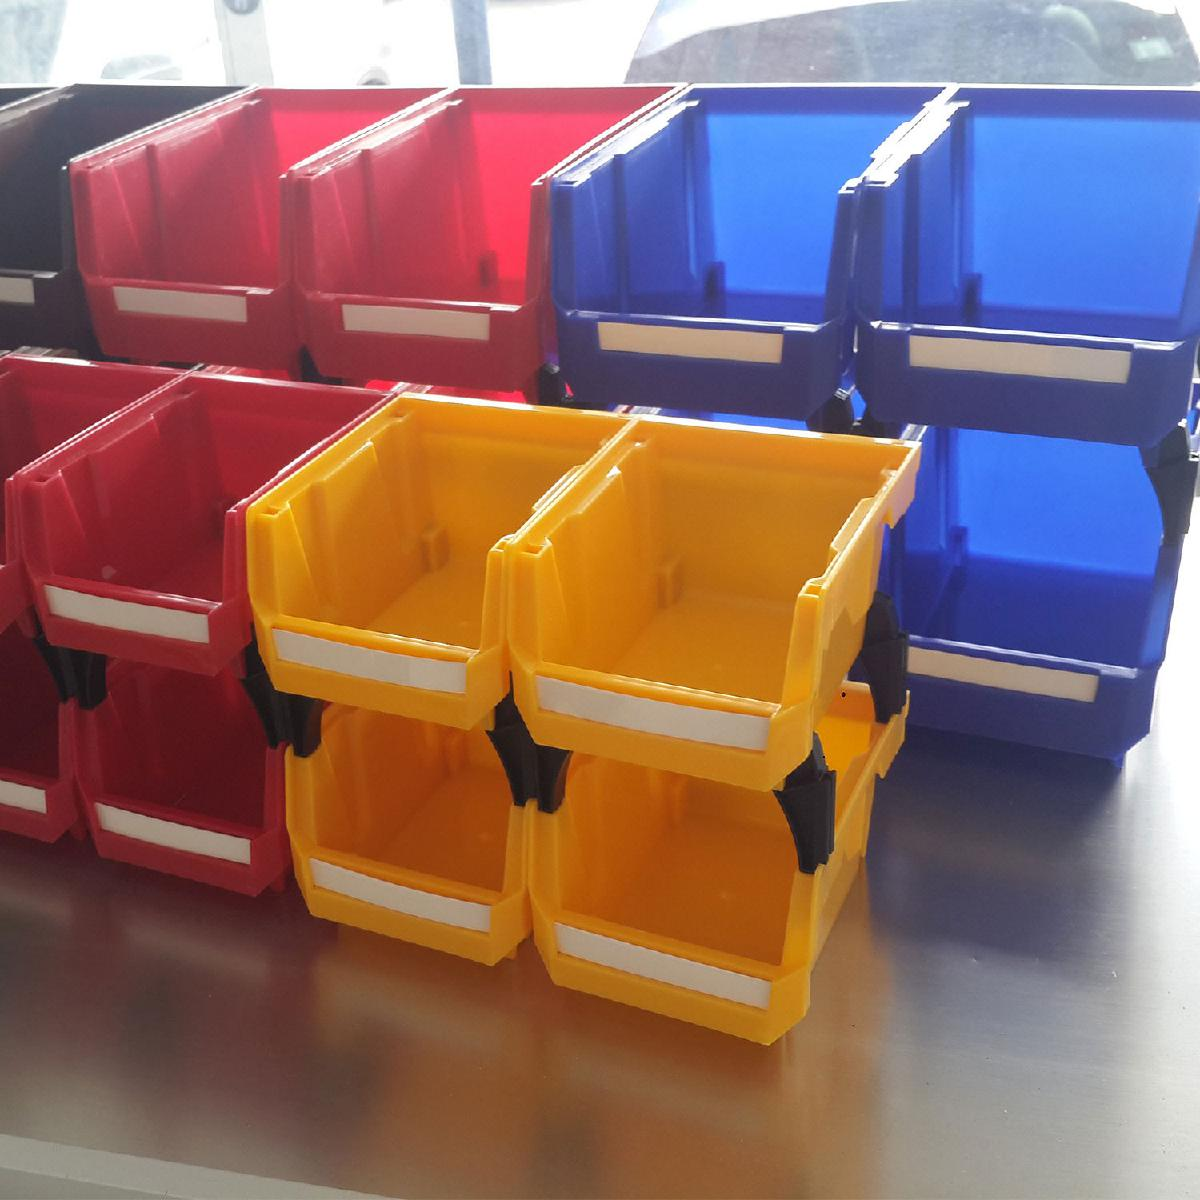 Photo 21 Pcs Storage Bins For Tools and Accessories With Riser Stands and Labels